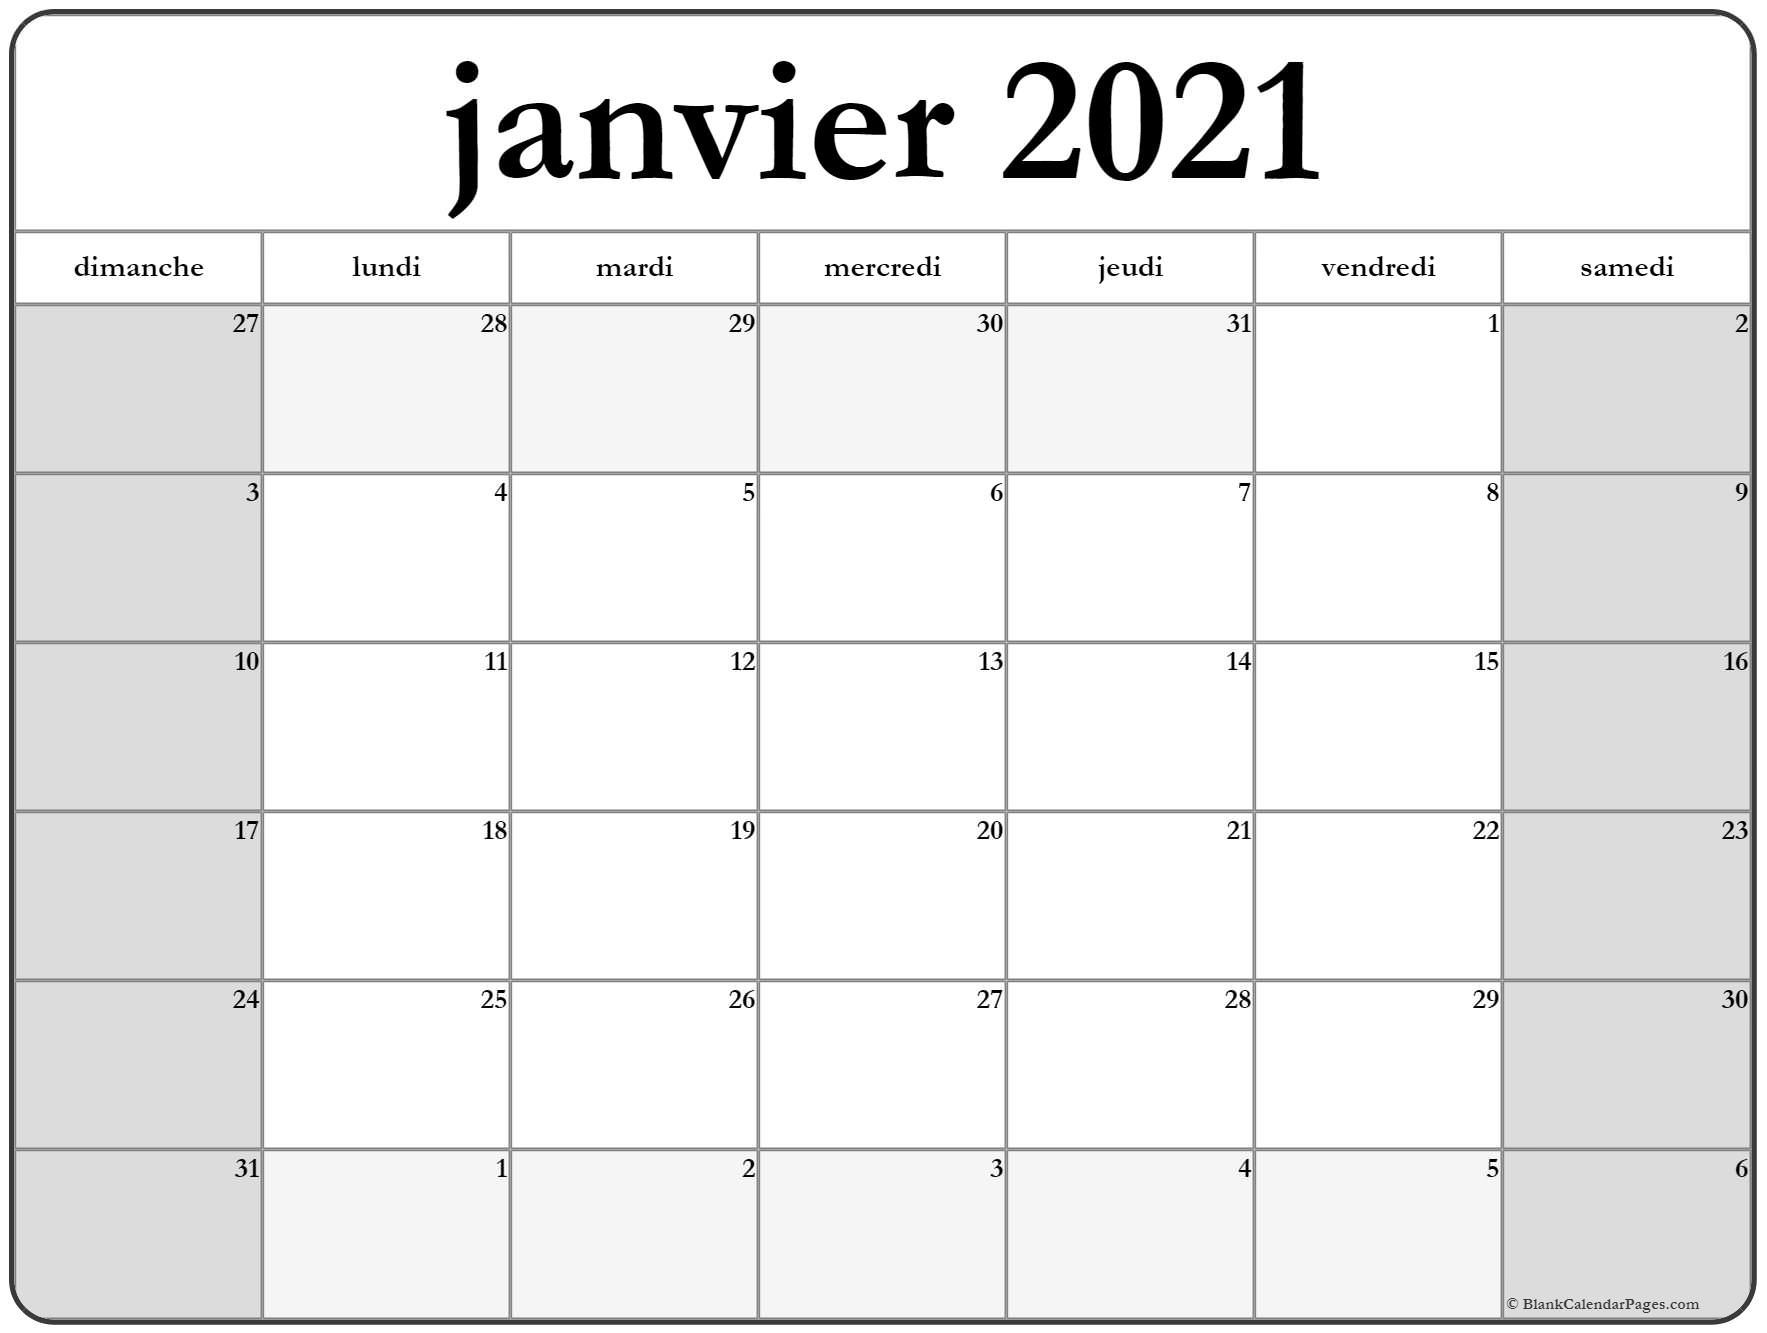 Calendrier Janvier 2021 A Imprimer in 2020 | Printable labels, How